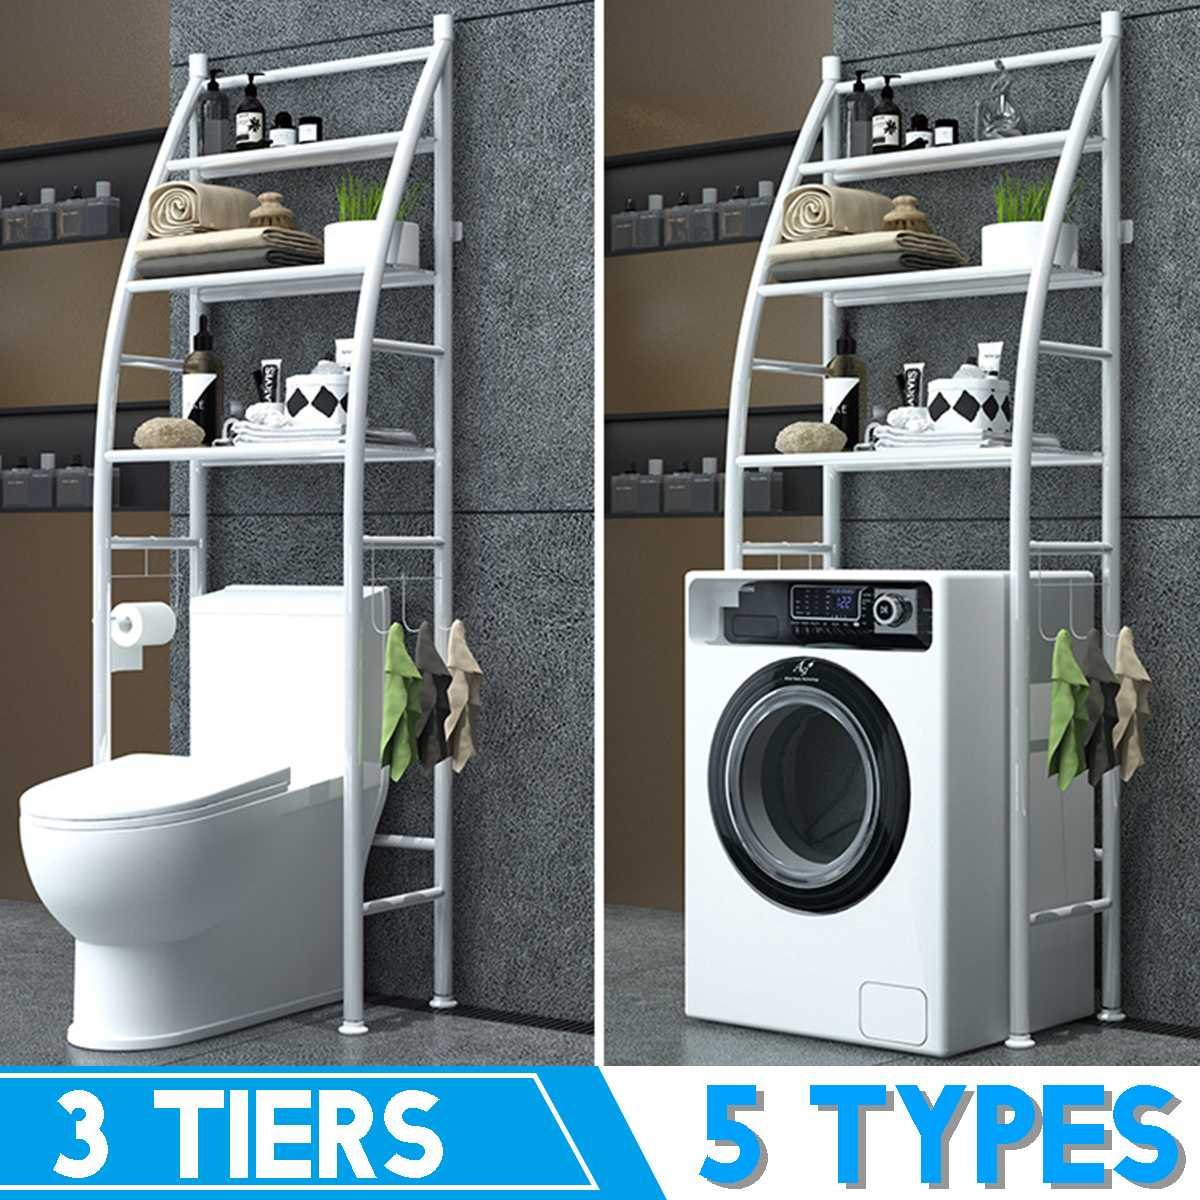 Thicken Over The Rack Metal Toilet Cabinet Shelving Kitchen Washing Machine Rack Bathroom Space Saver Shelf Organizer Holder New